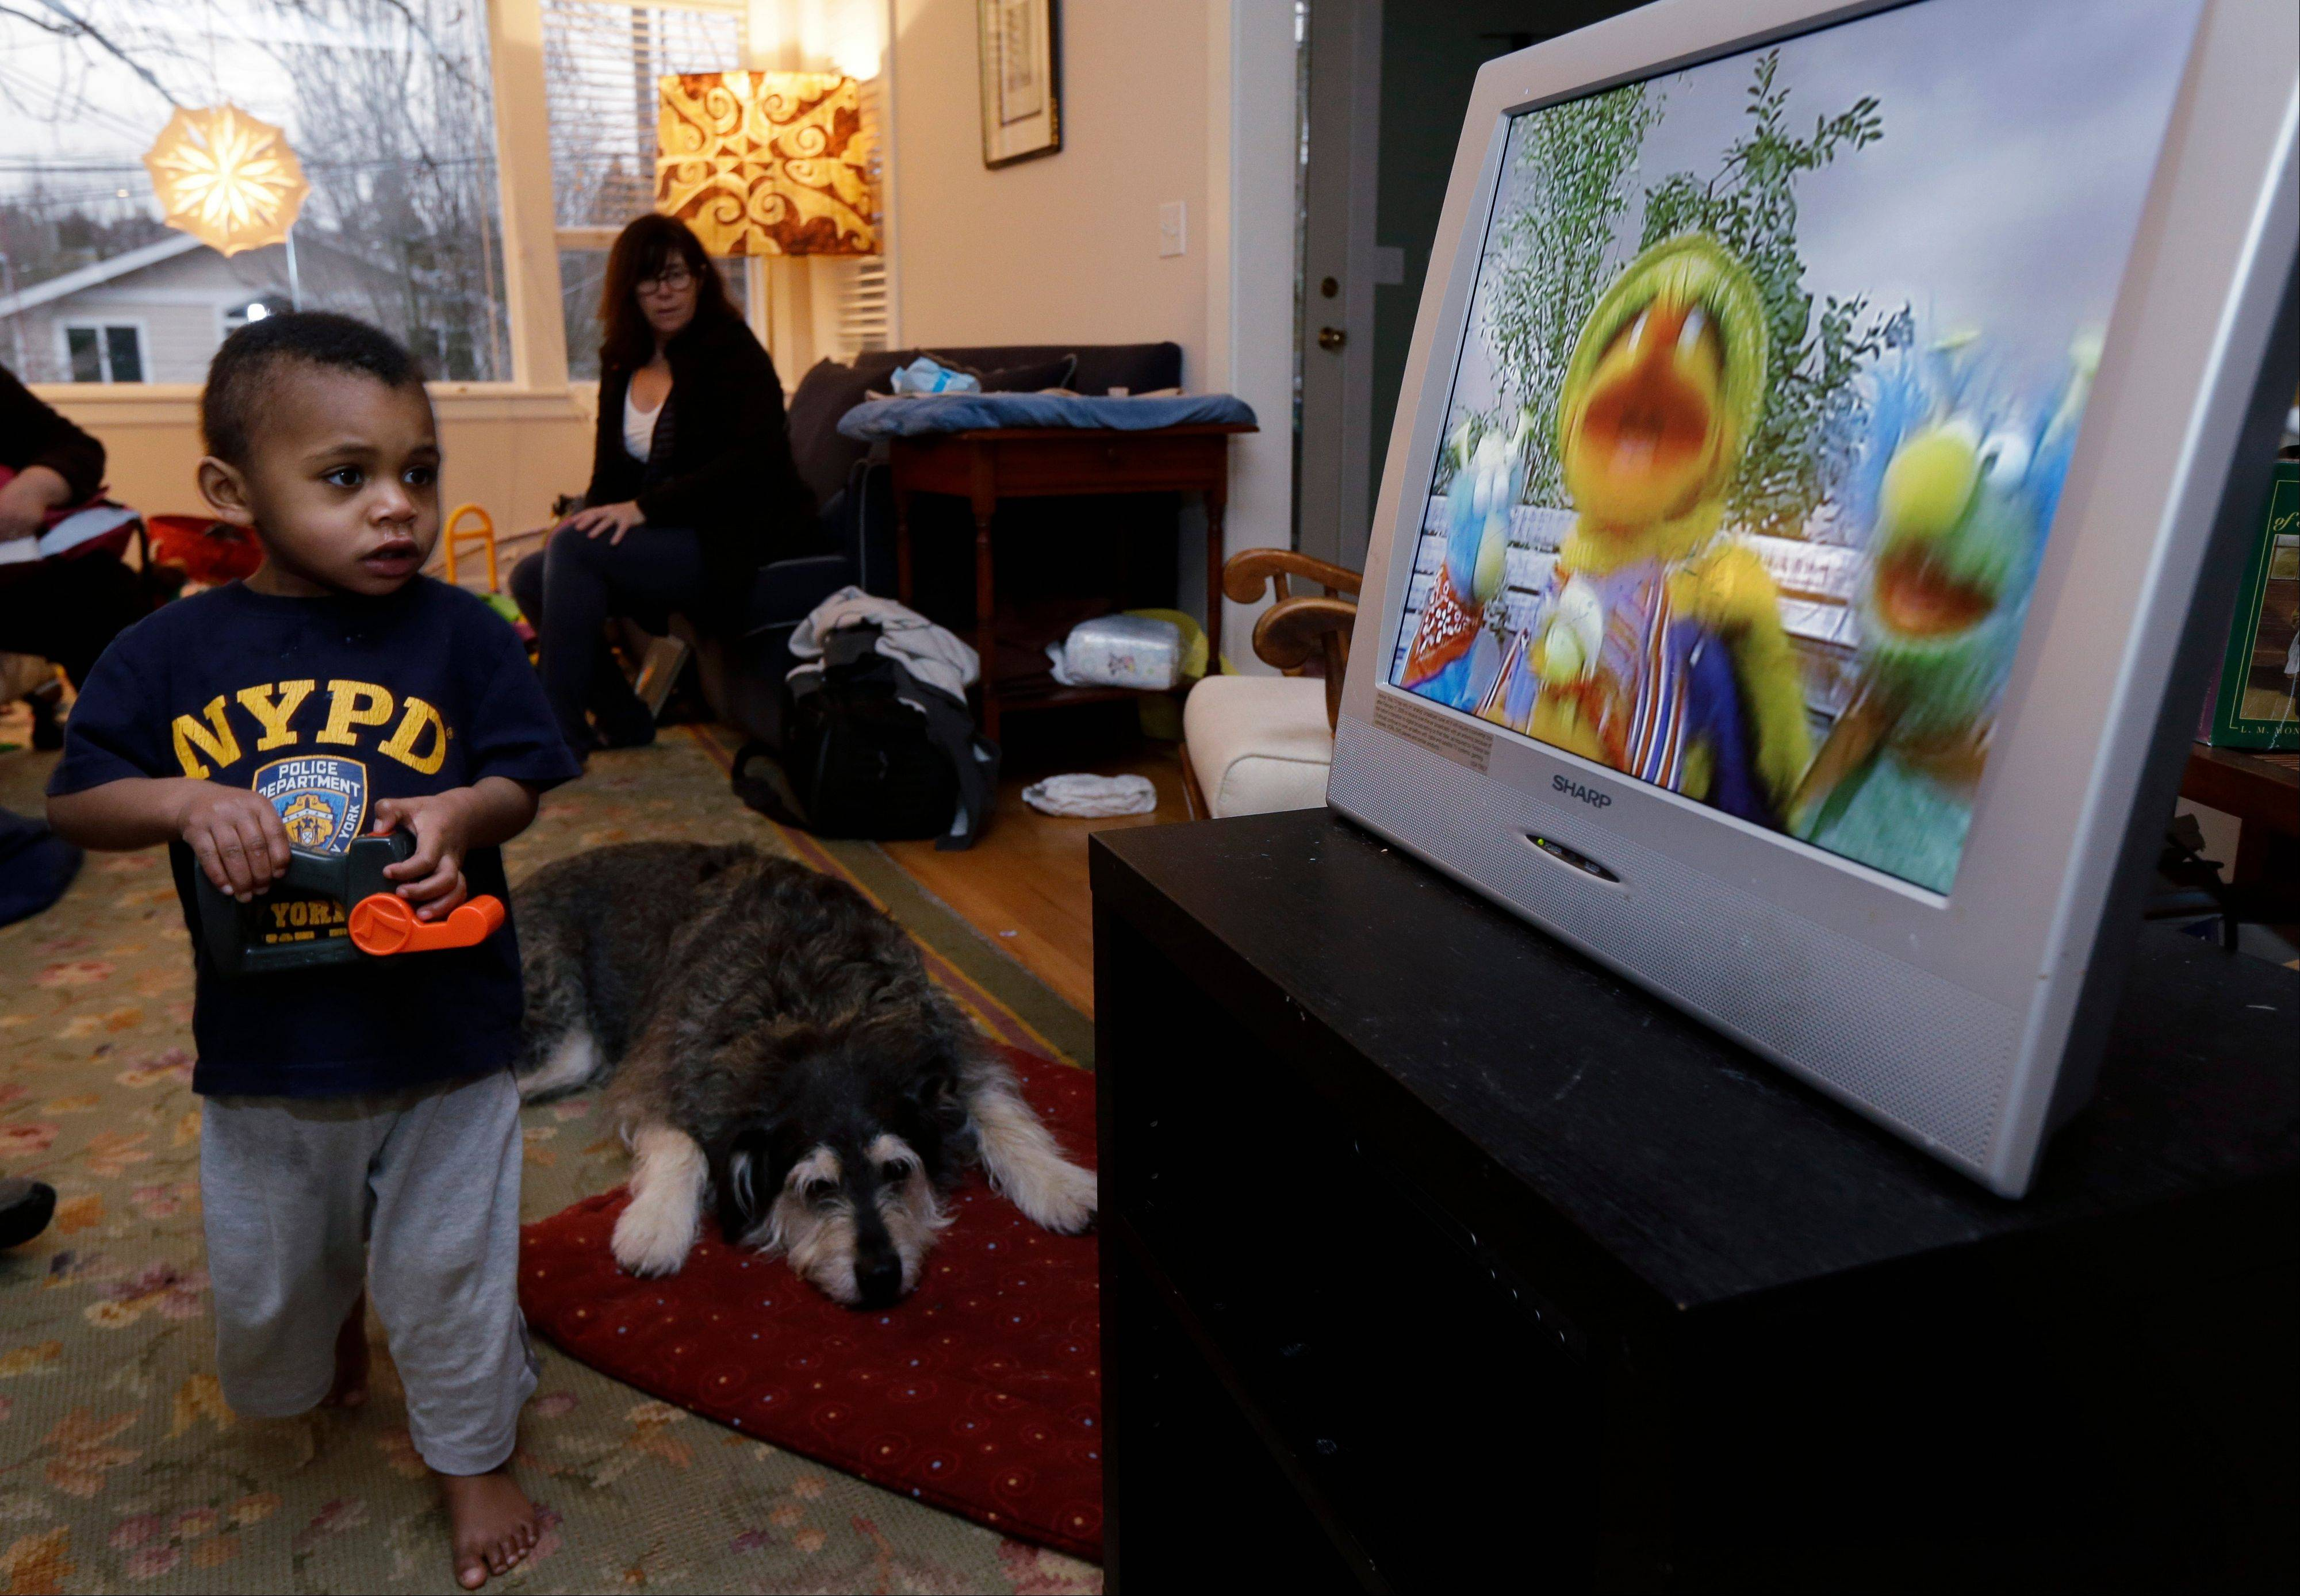 Nancy Jensen, second from left, looks on as her son Joe, 2, is given a special treat of a little TV time at their home in Seattle.